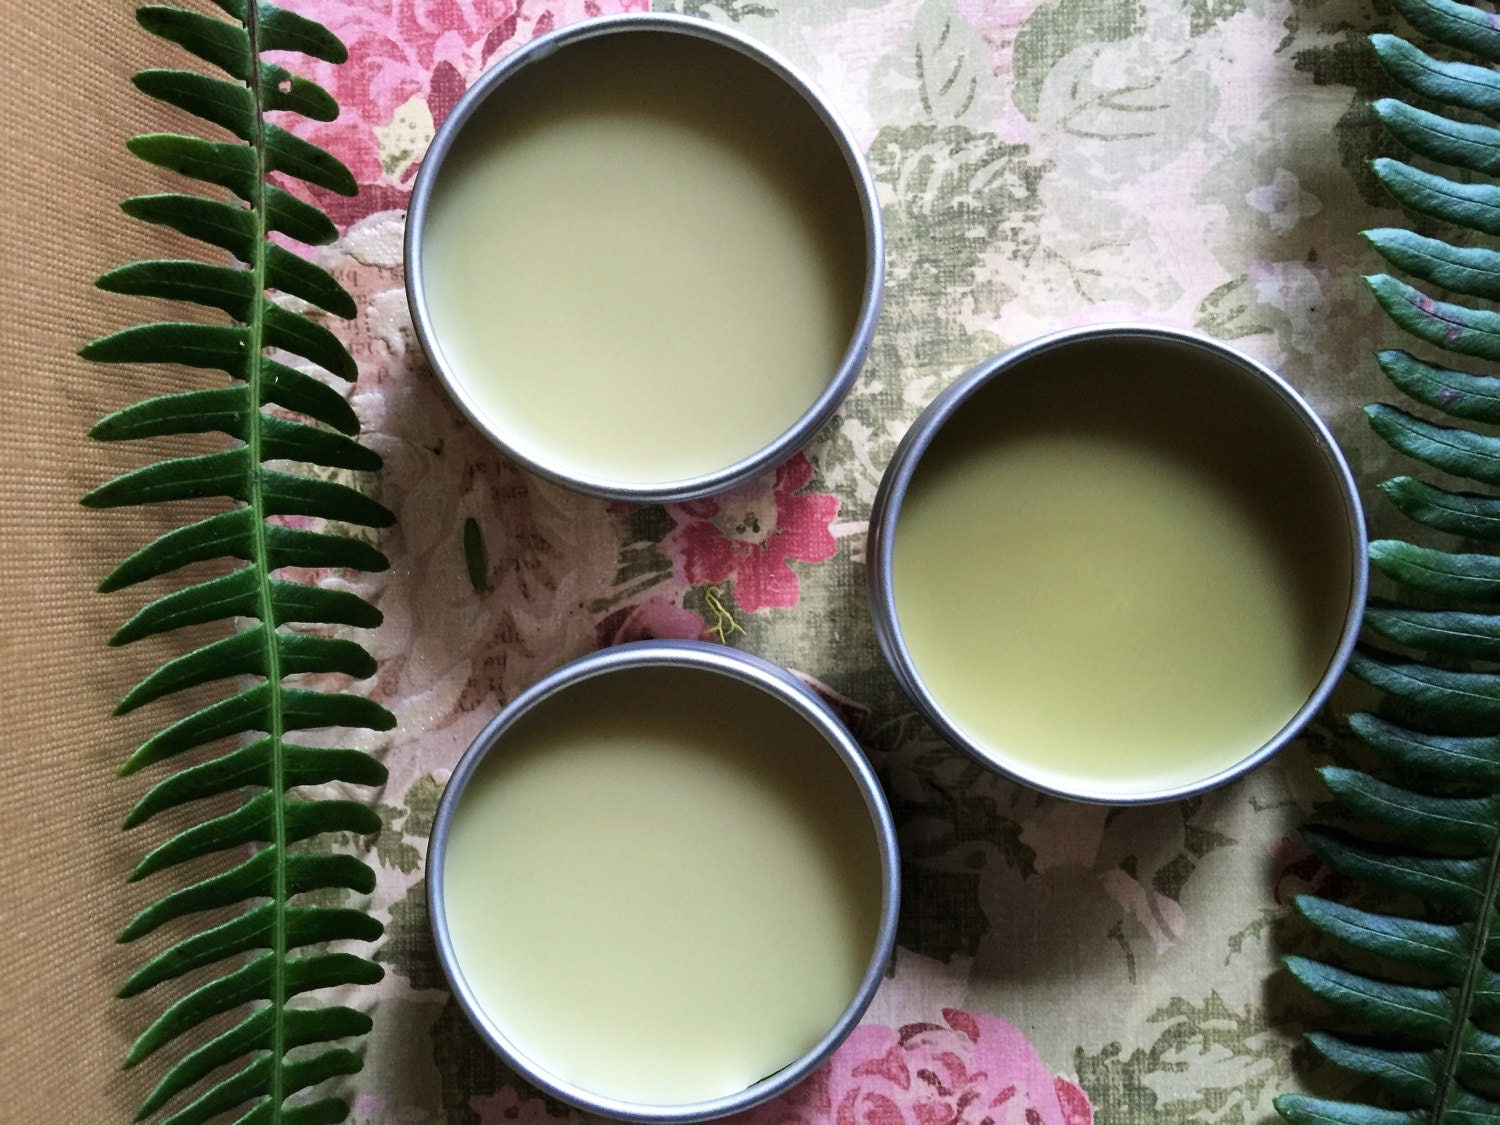 Natural herbal infused and aromatic deodorant Citrus or Woodsy or Floral